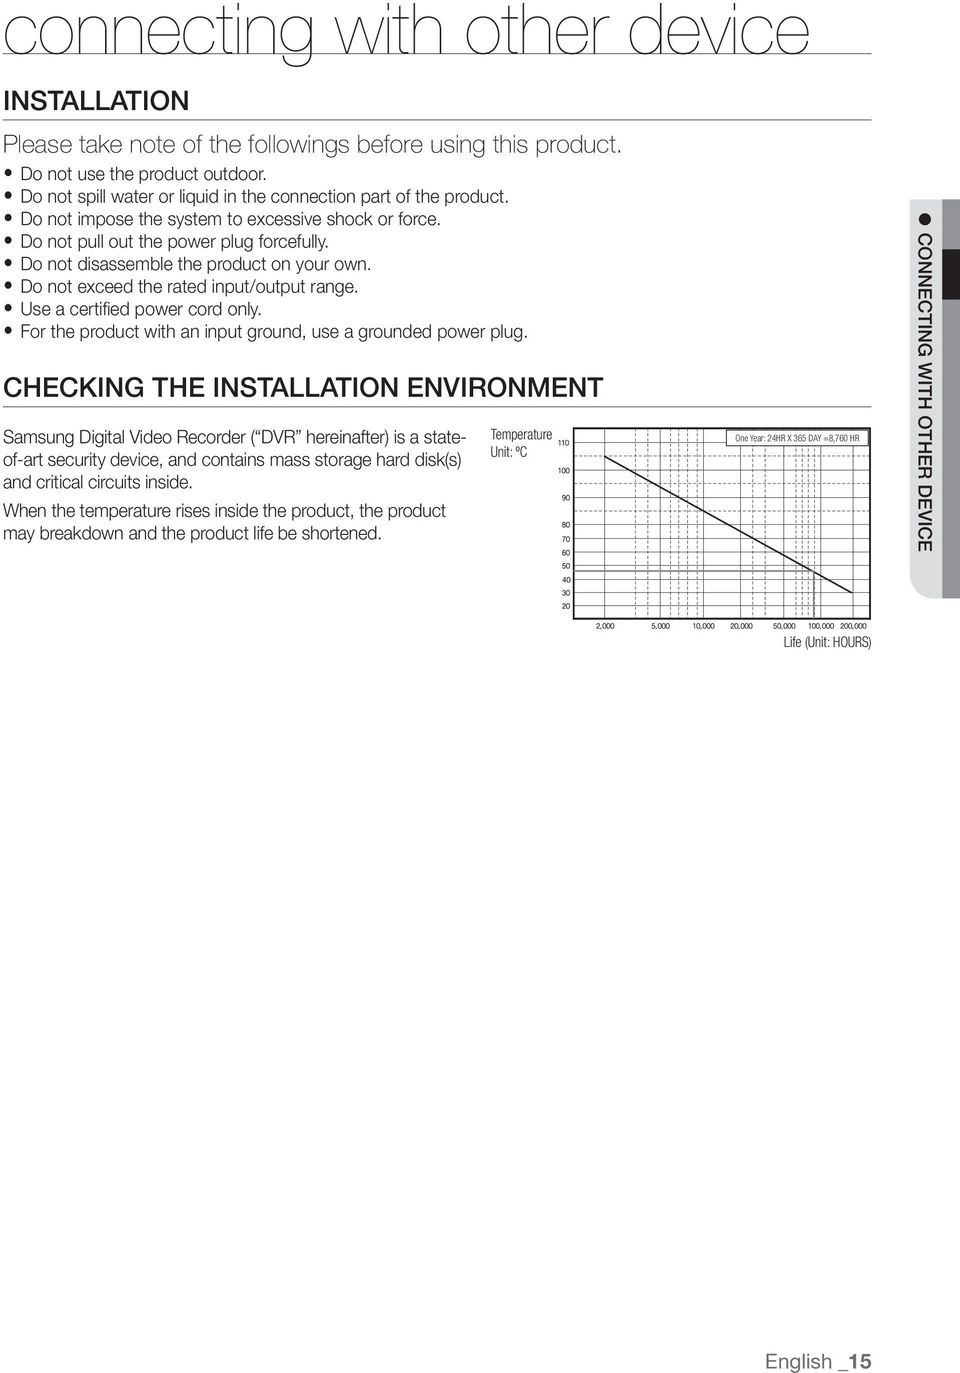 4 Channel Dvr User Manual Sds P Pdf 8 Samsung Security Wiring Diagram Do Not Disassemble The Product On Your Own Exceed Rated Input